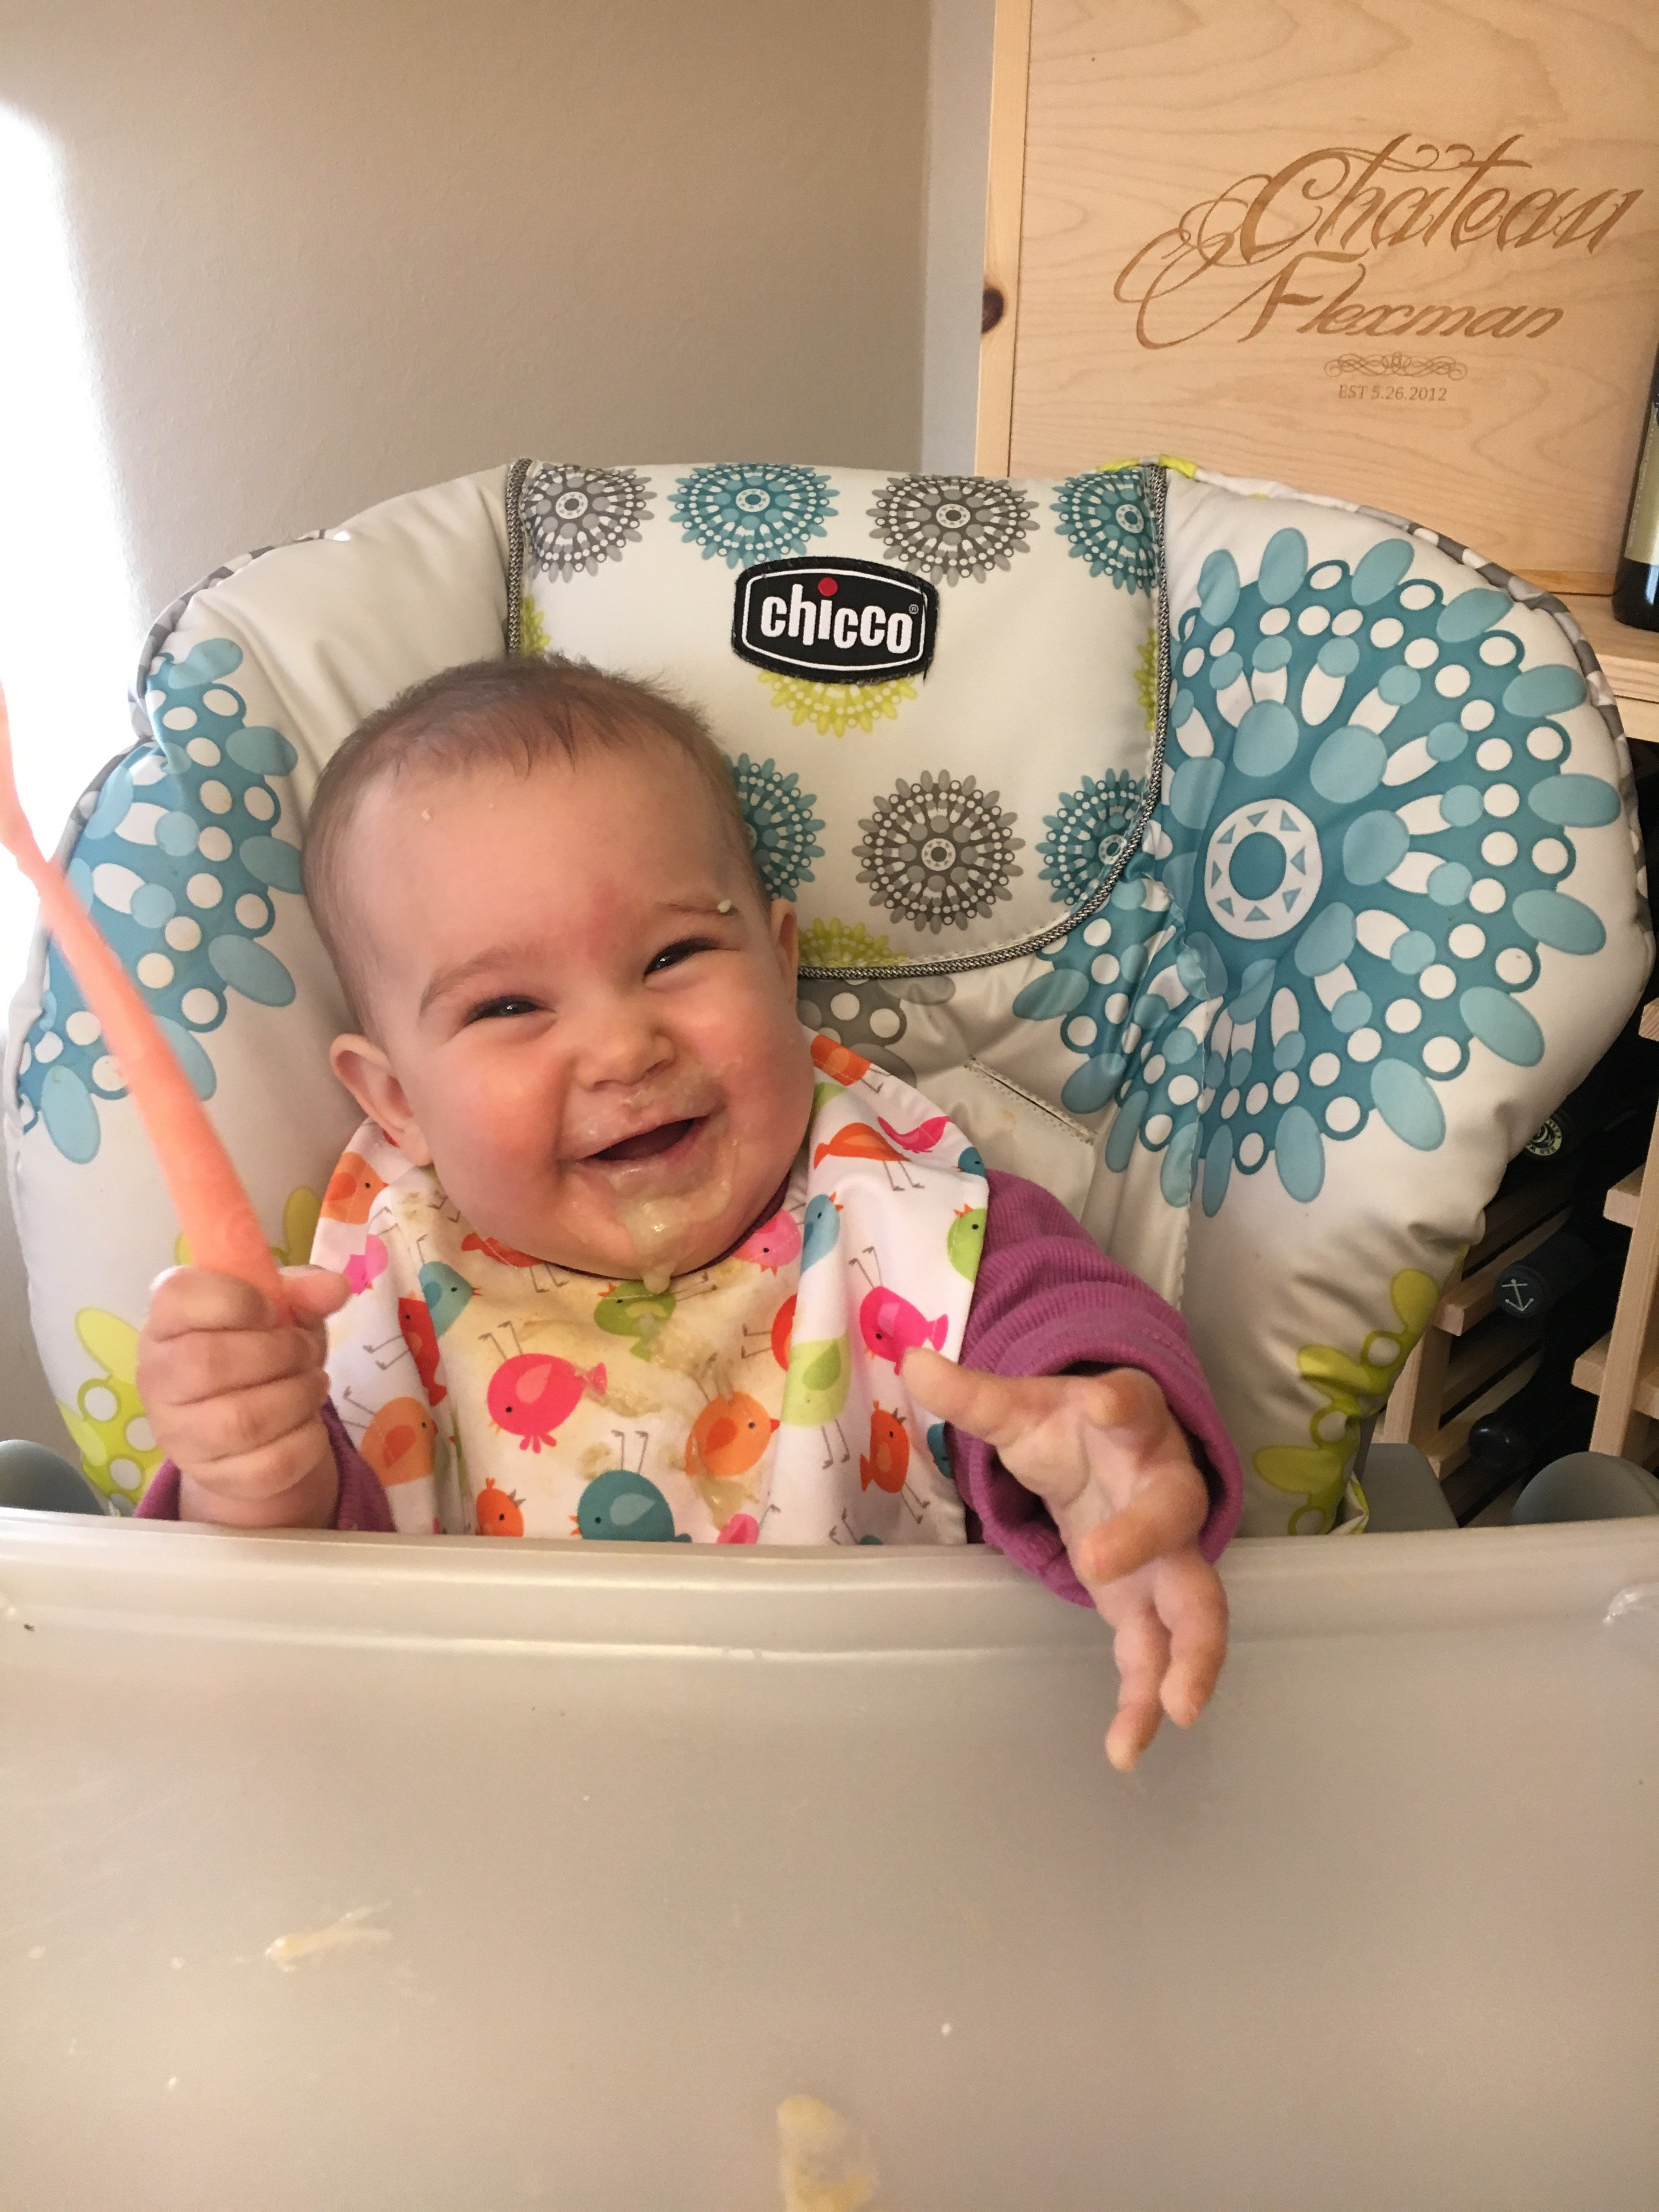 How to feed baby solids | start feeding baby | introducing foods to baby | feeding ideas for baby | Gerber